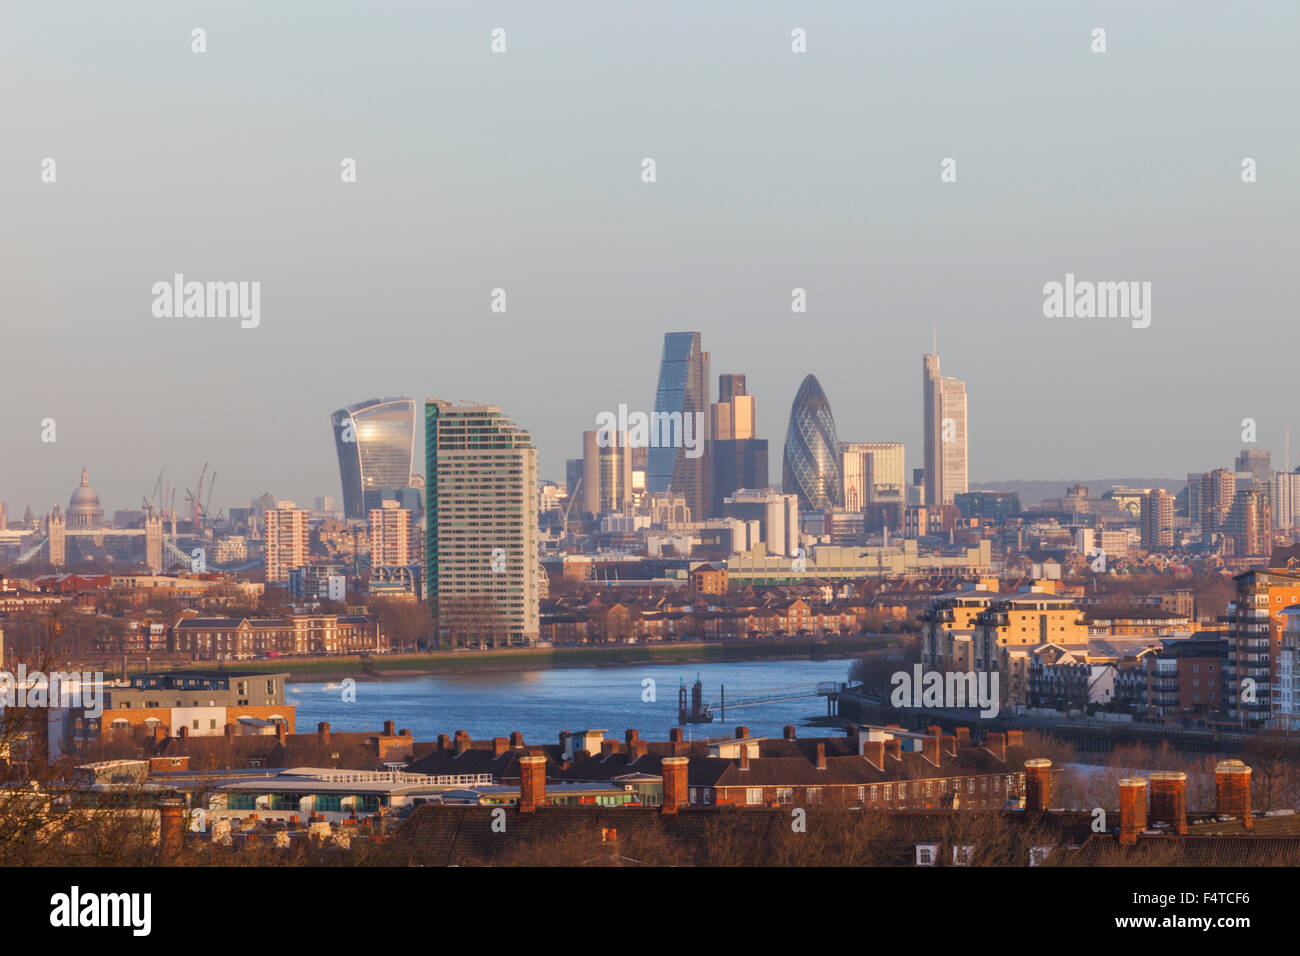 England, London, Greenwich, View of London Skyline from Greenwich - Stock Image